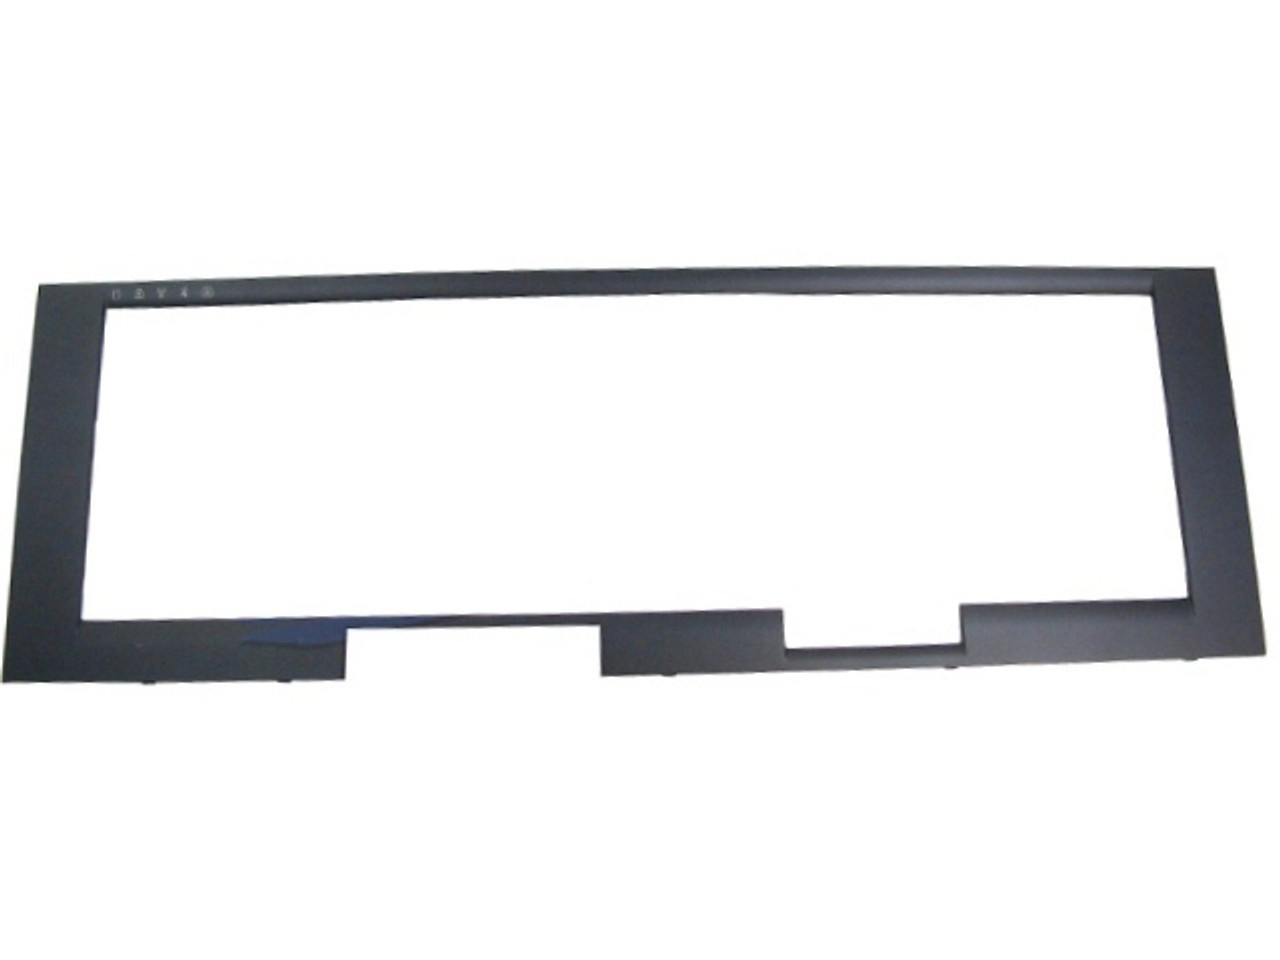 Dell Precision M6600 Keyboard Trim Bezel - 4229N (A)